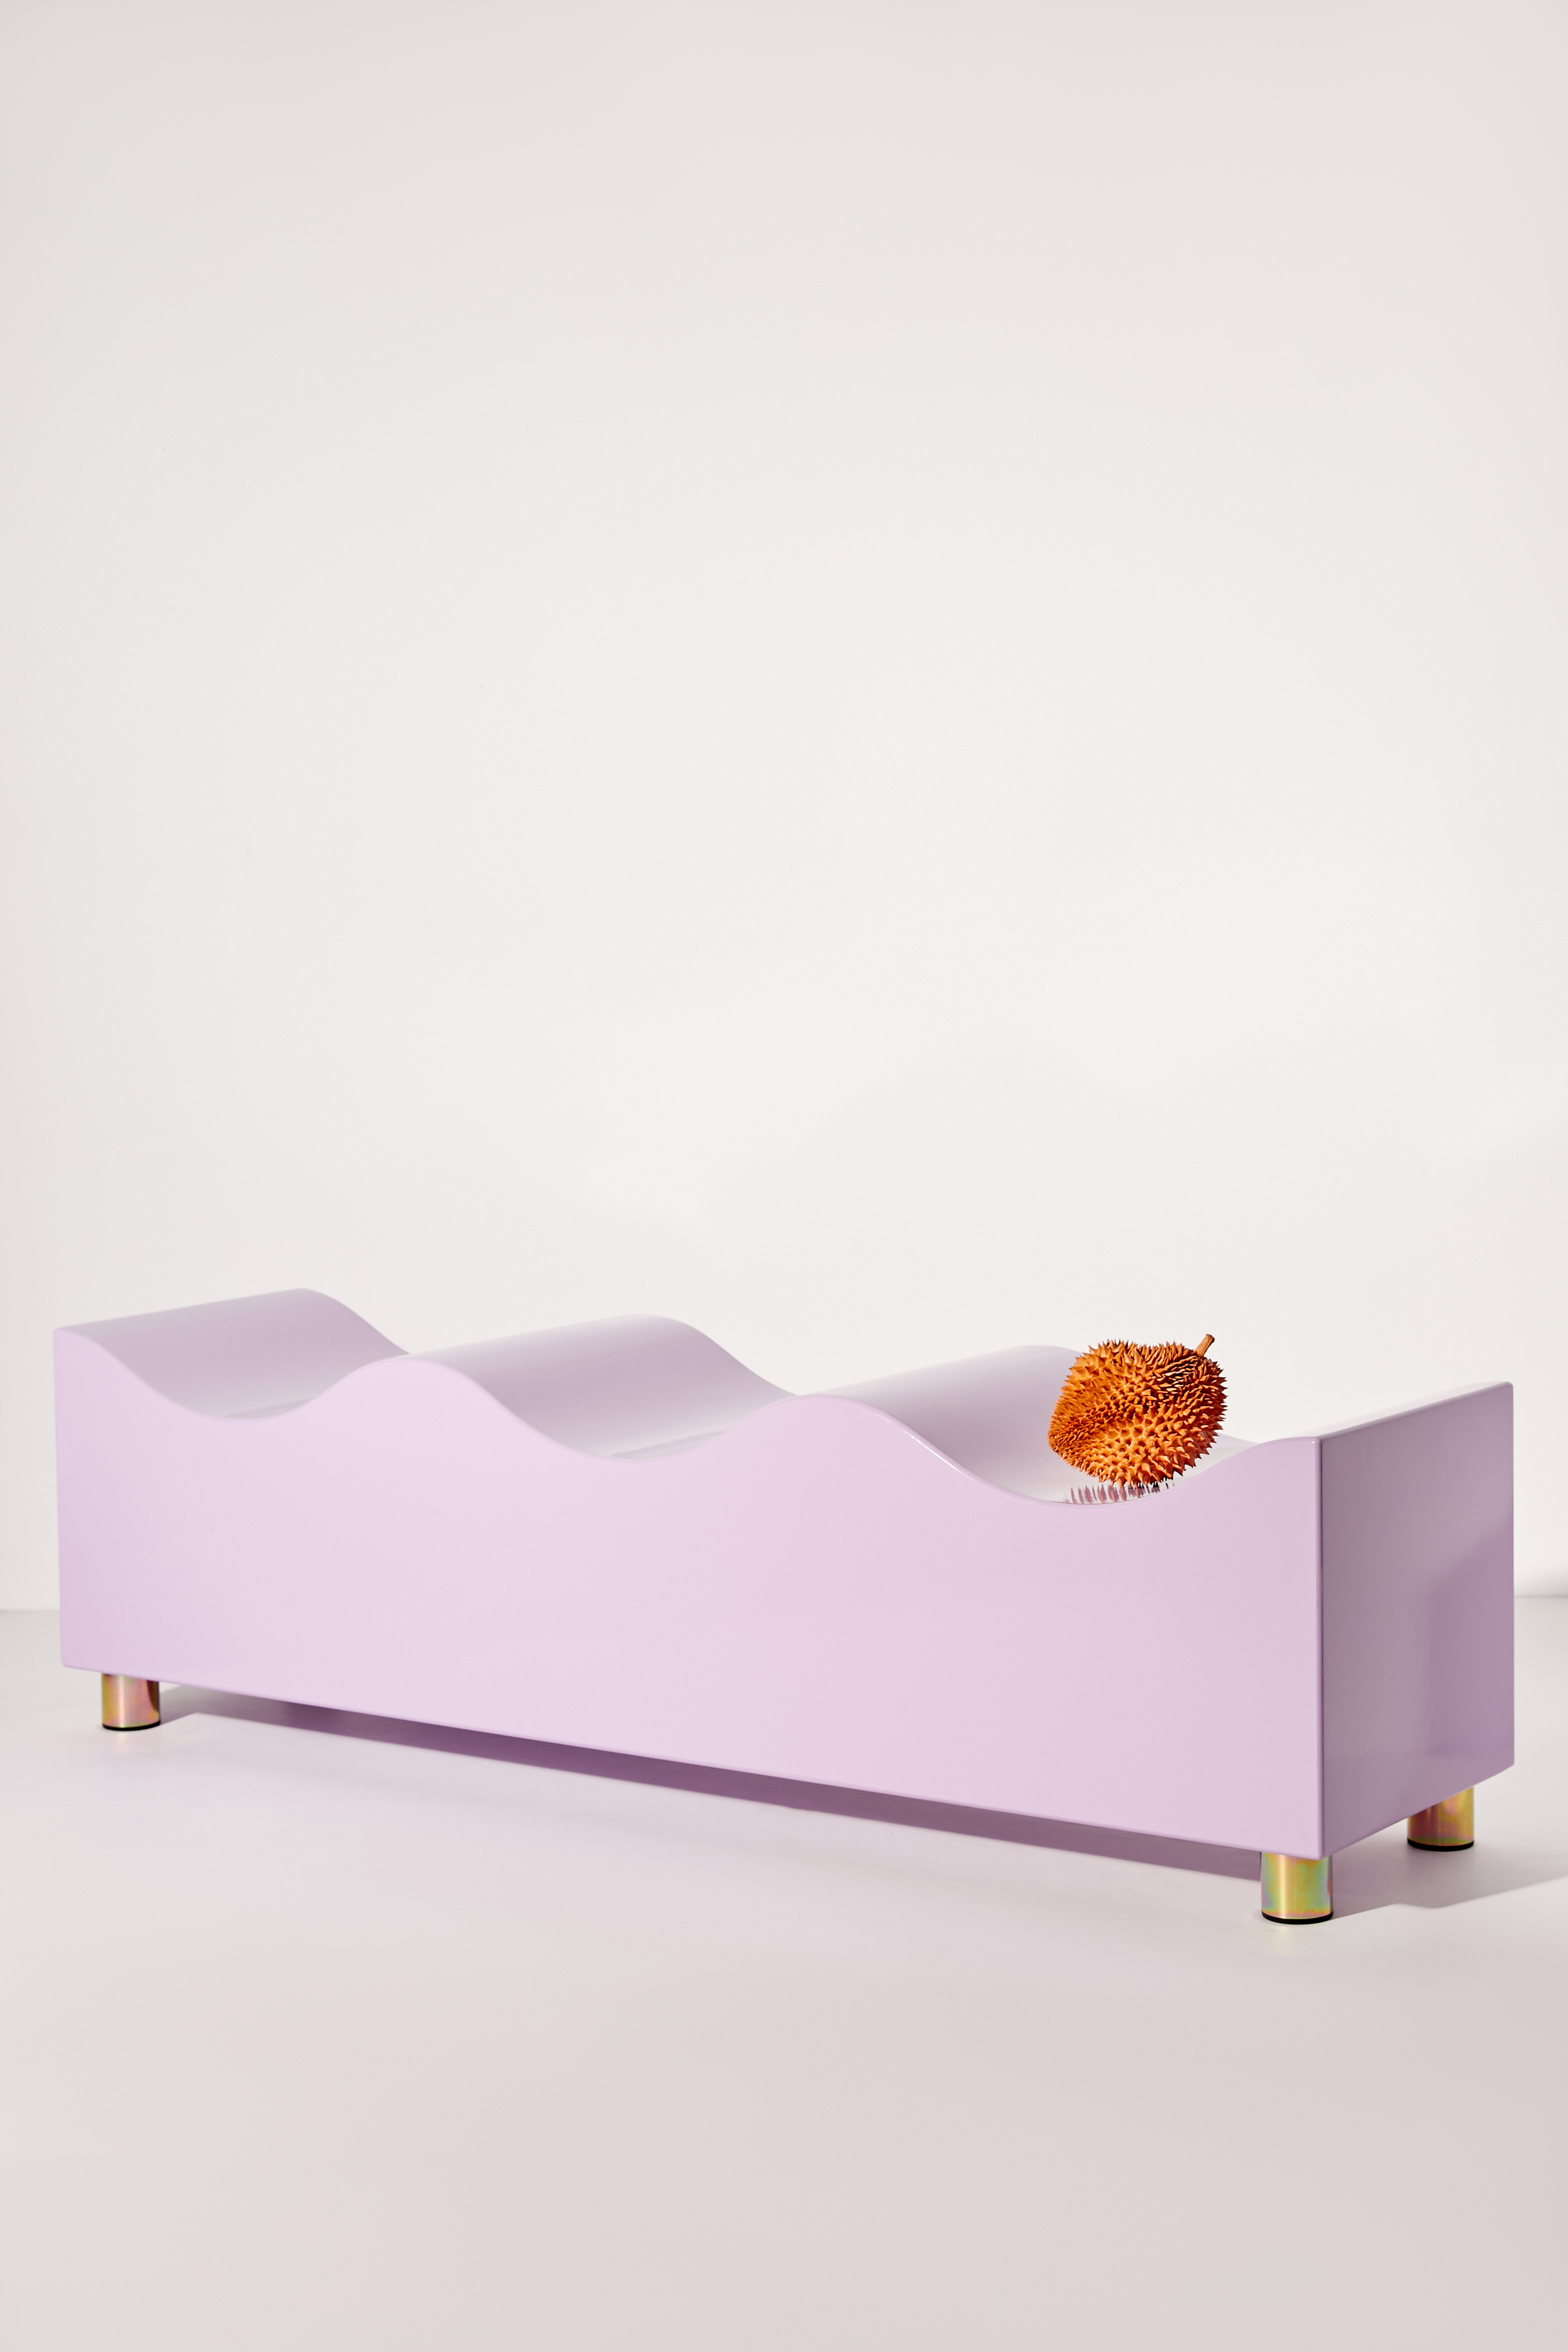 Fine Uo X Clever Find Out 6 Rising American Design Talents Bralicious Painted Fabric Chair Ideas Braliciousco